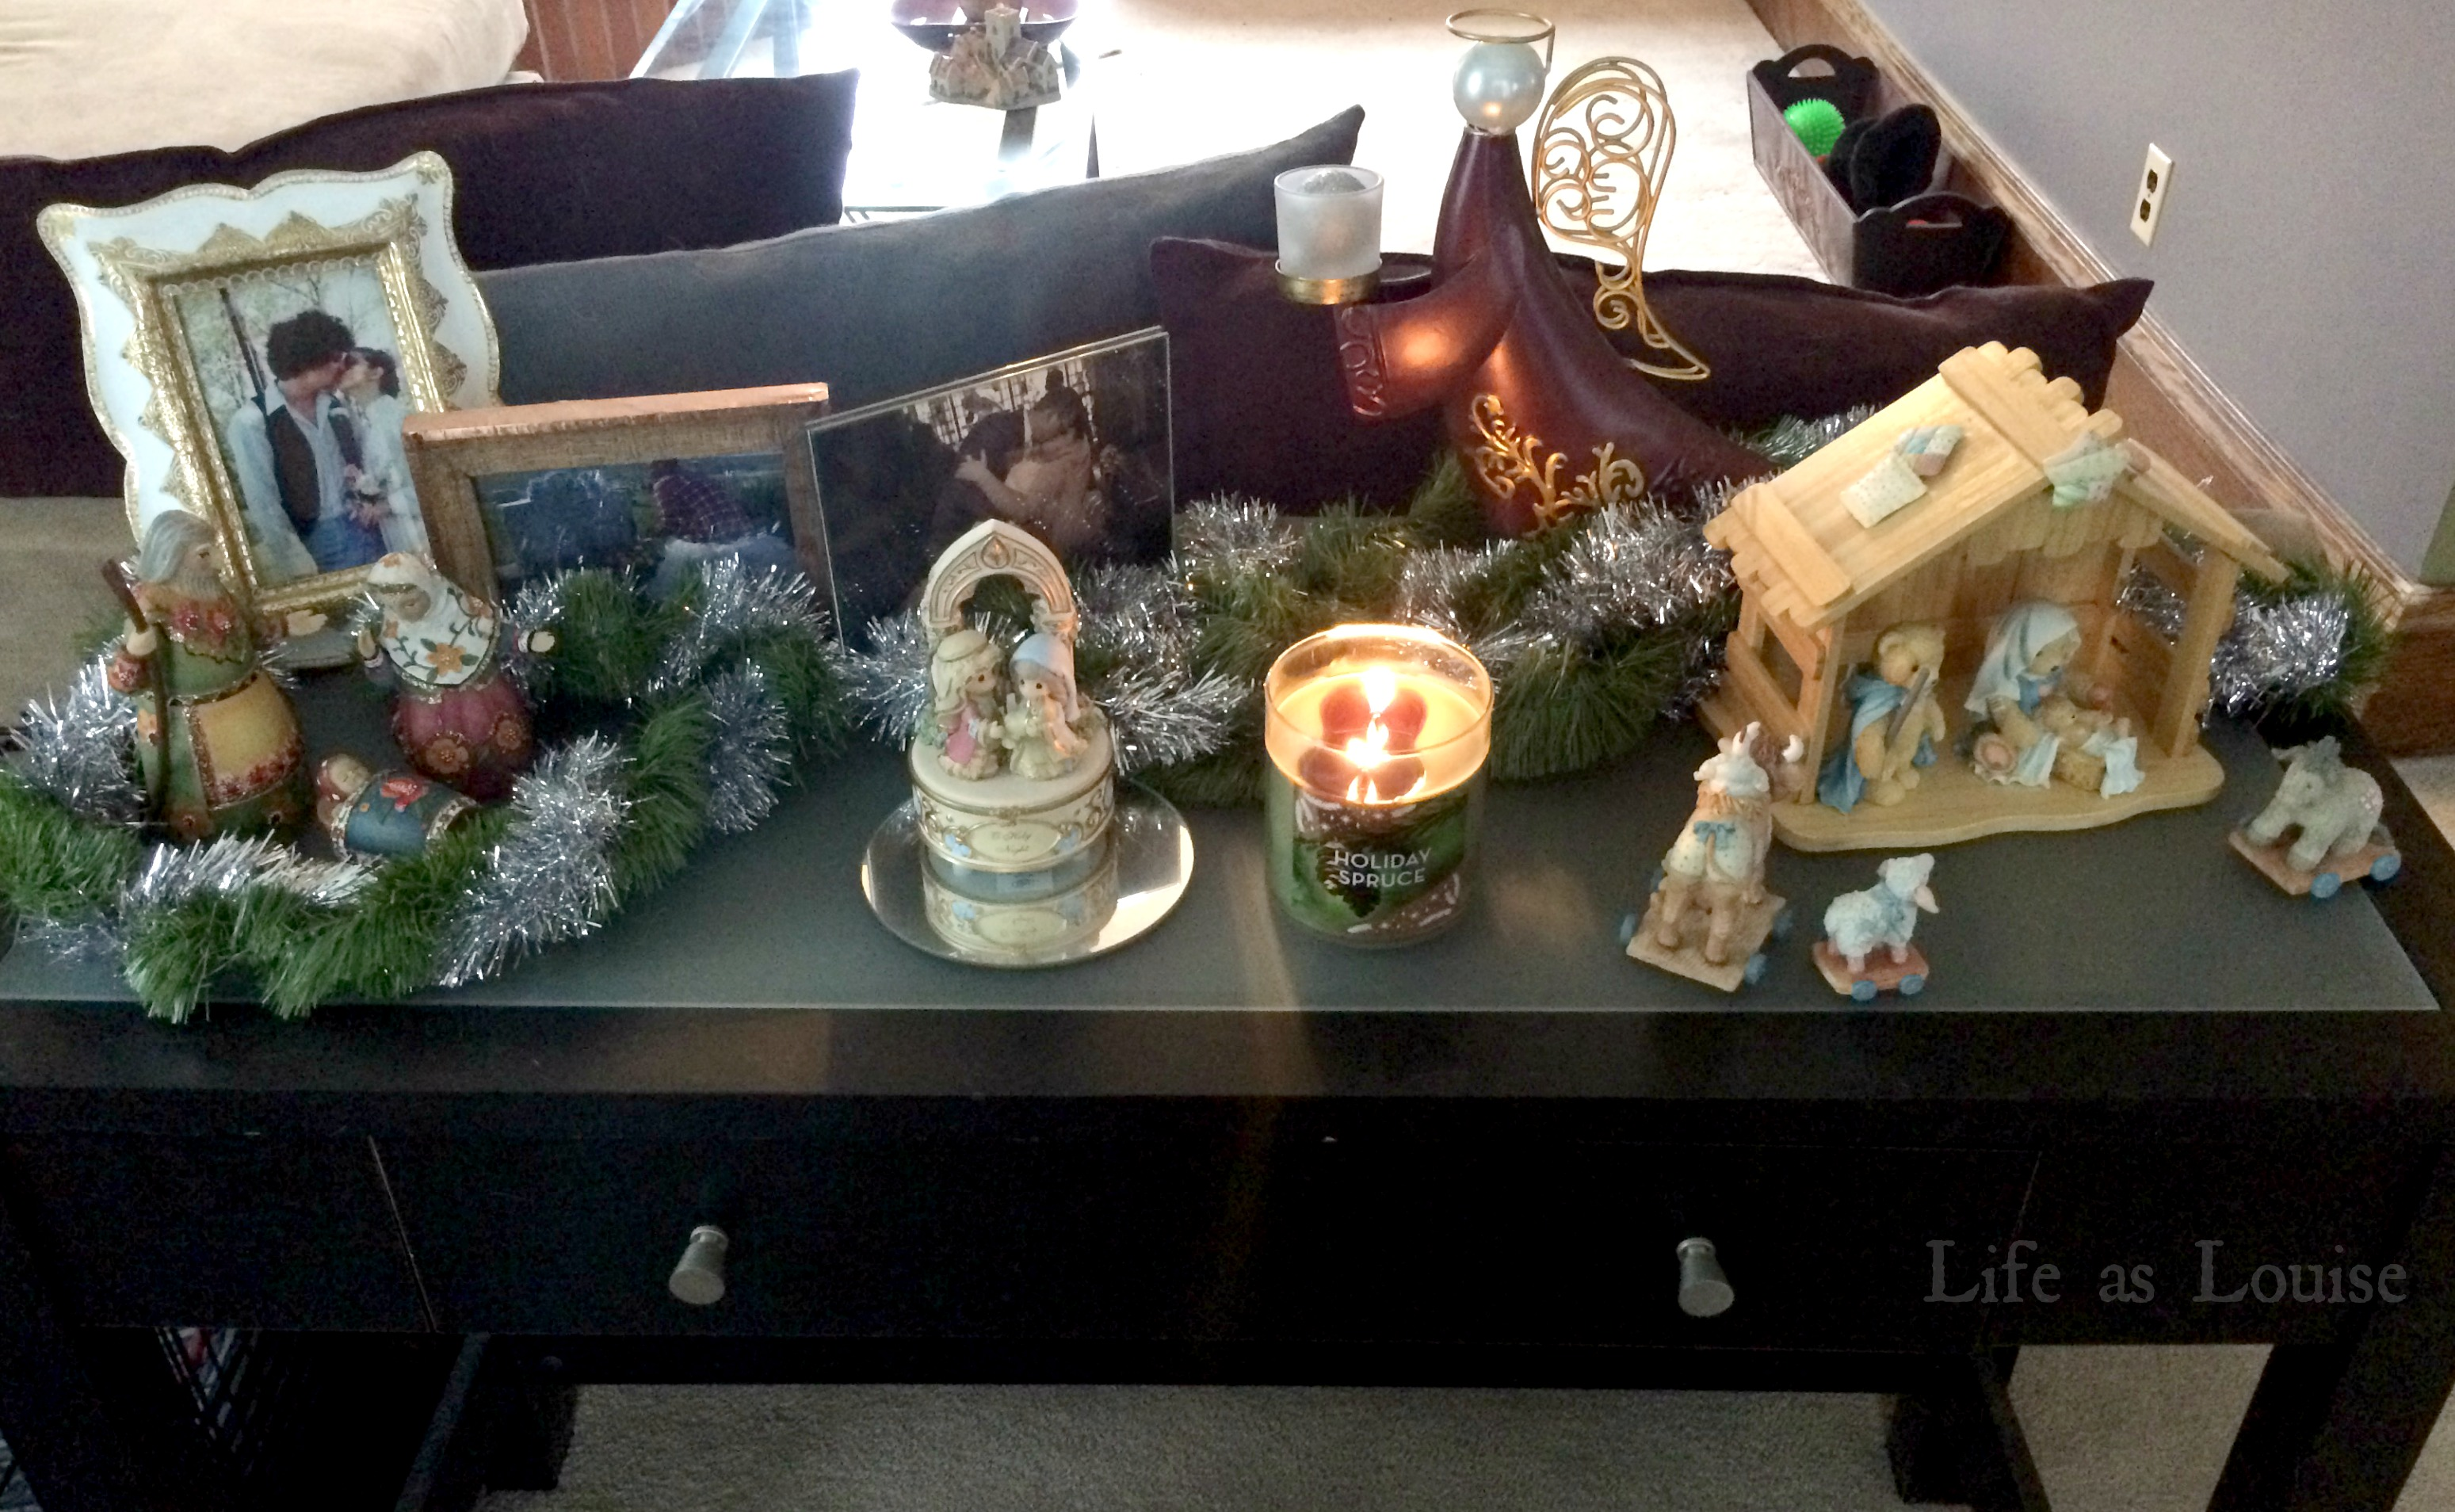 I think we have five nativity sets in our house...